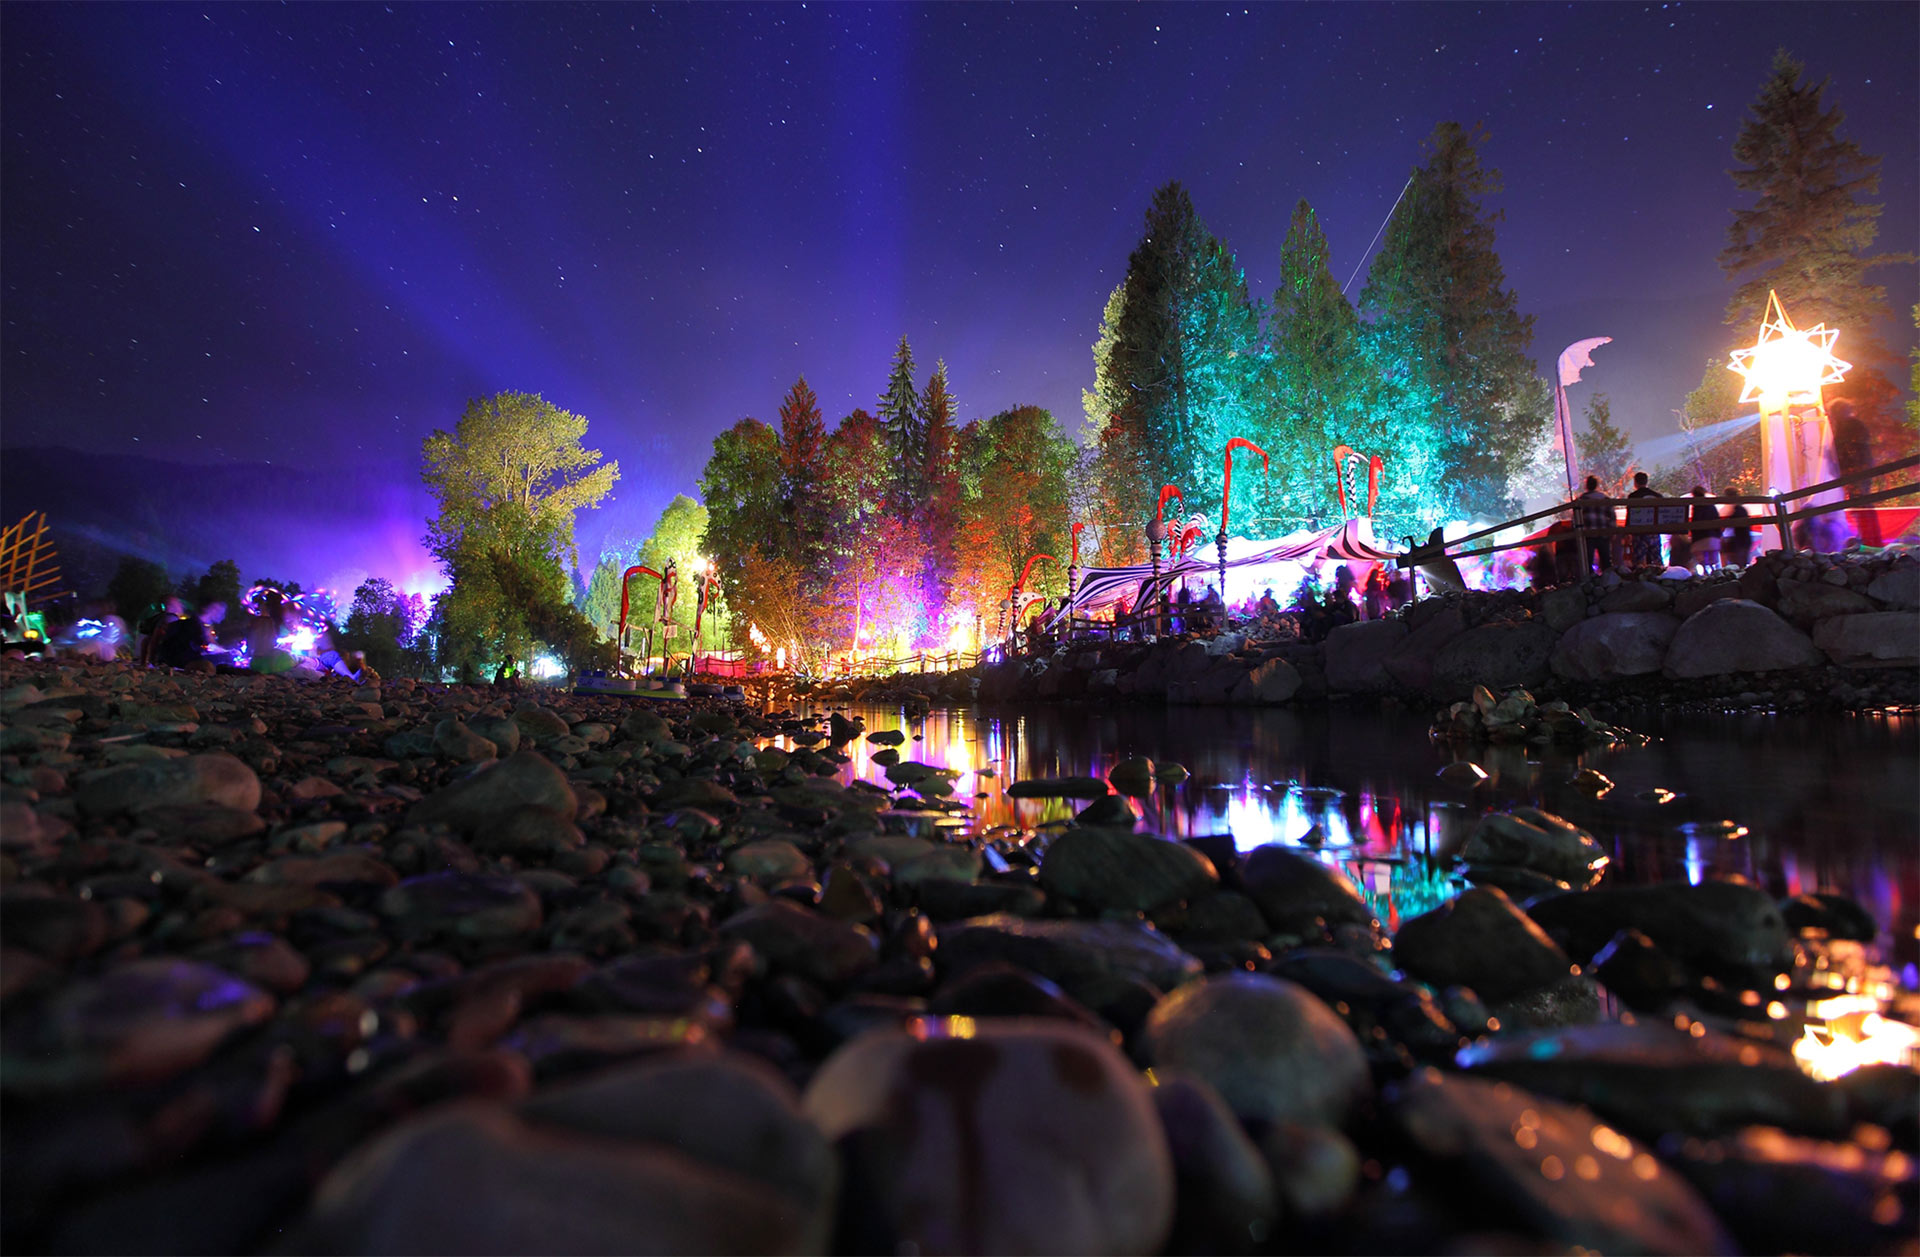 THE SHAMBHALA MUSIC FESTIVAL 2014 LINEUP IS OUT TODAY!